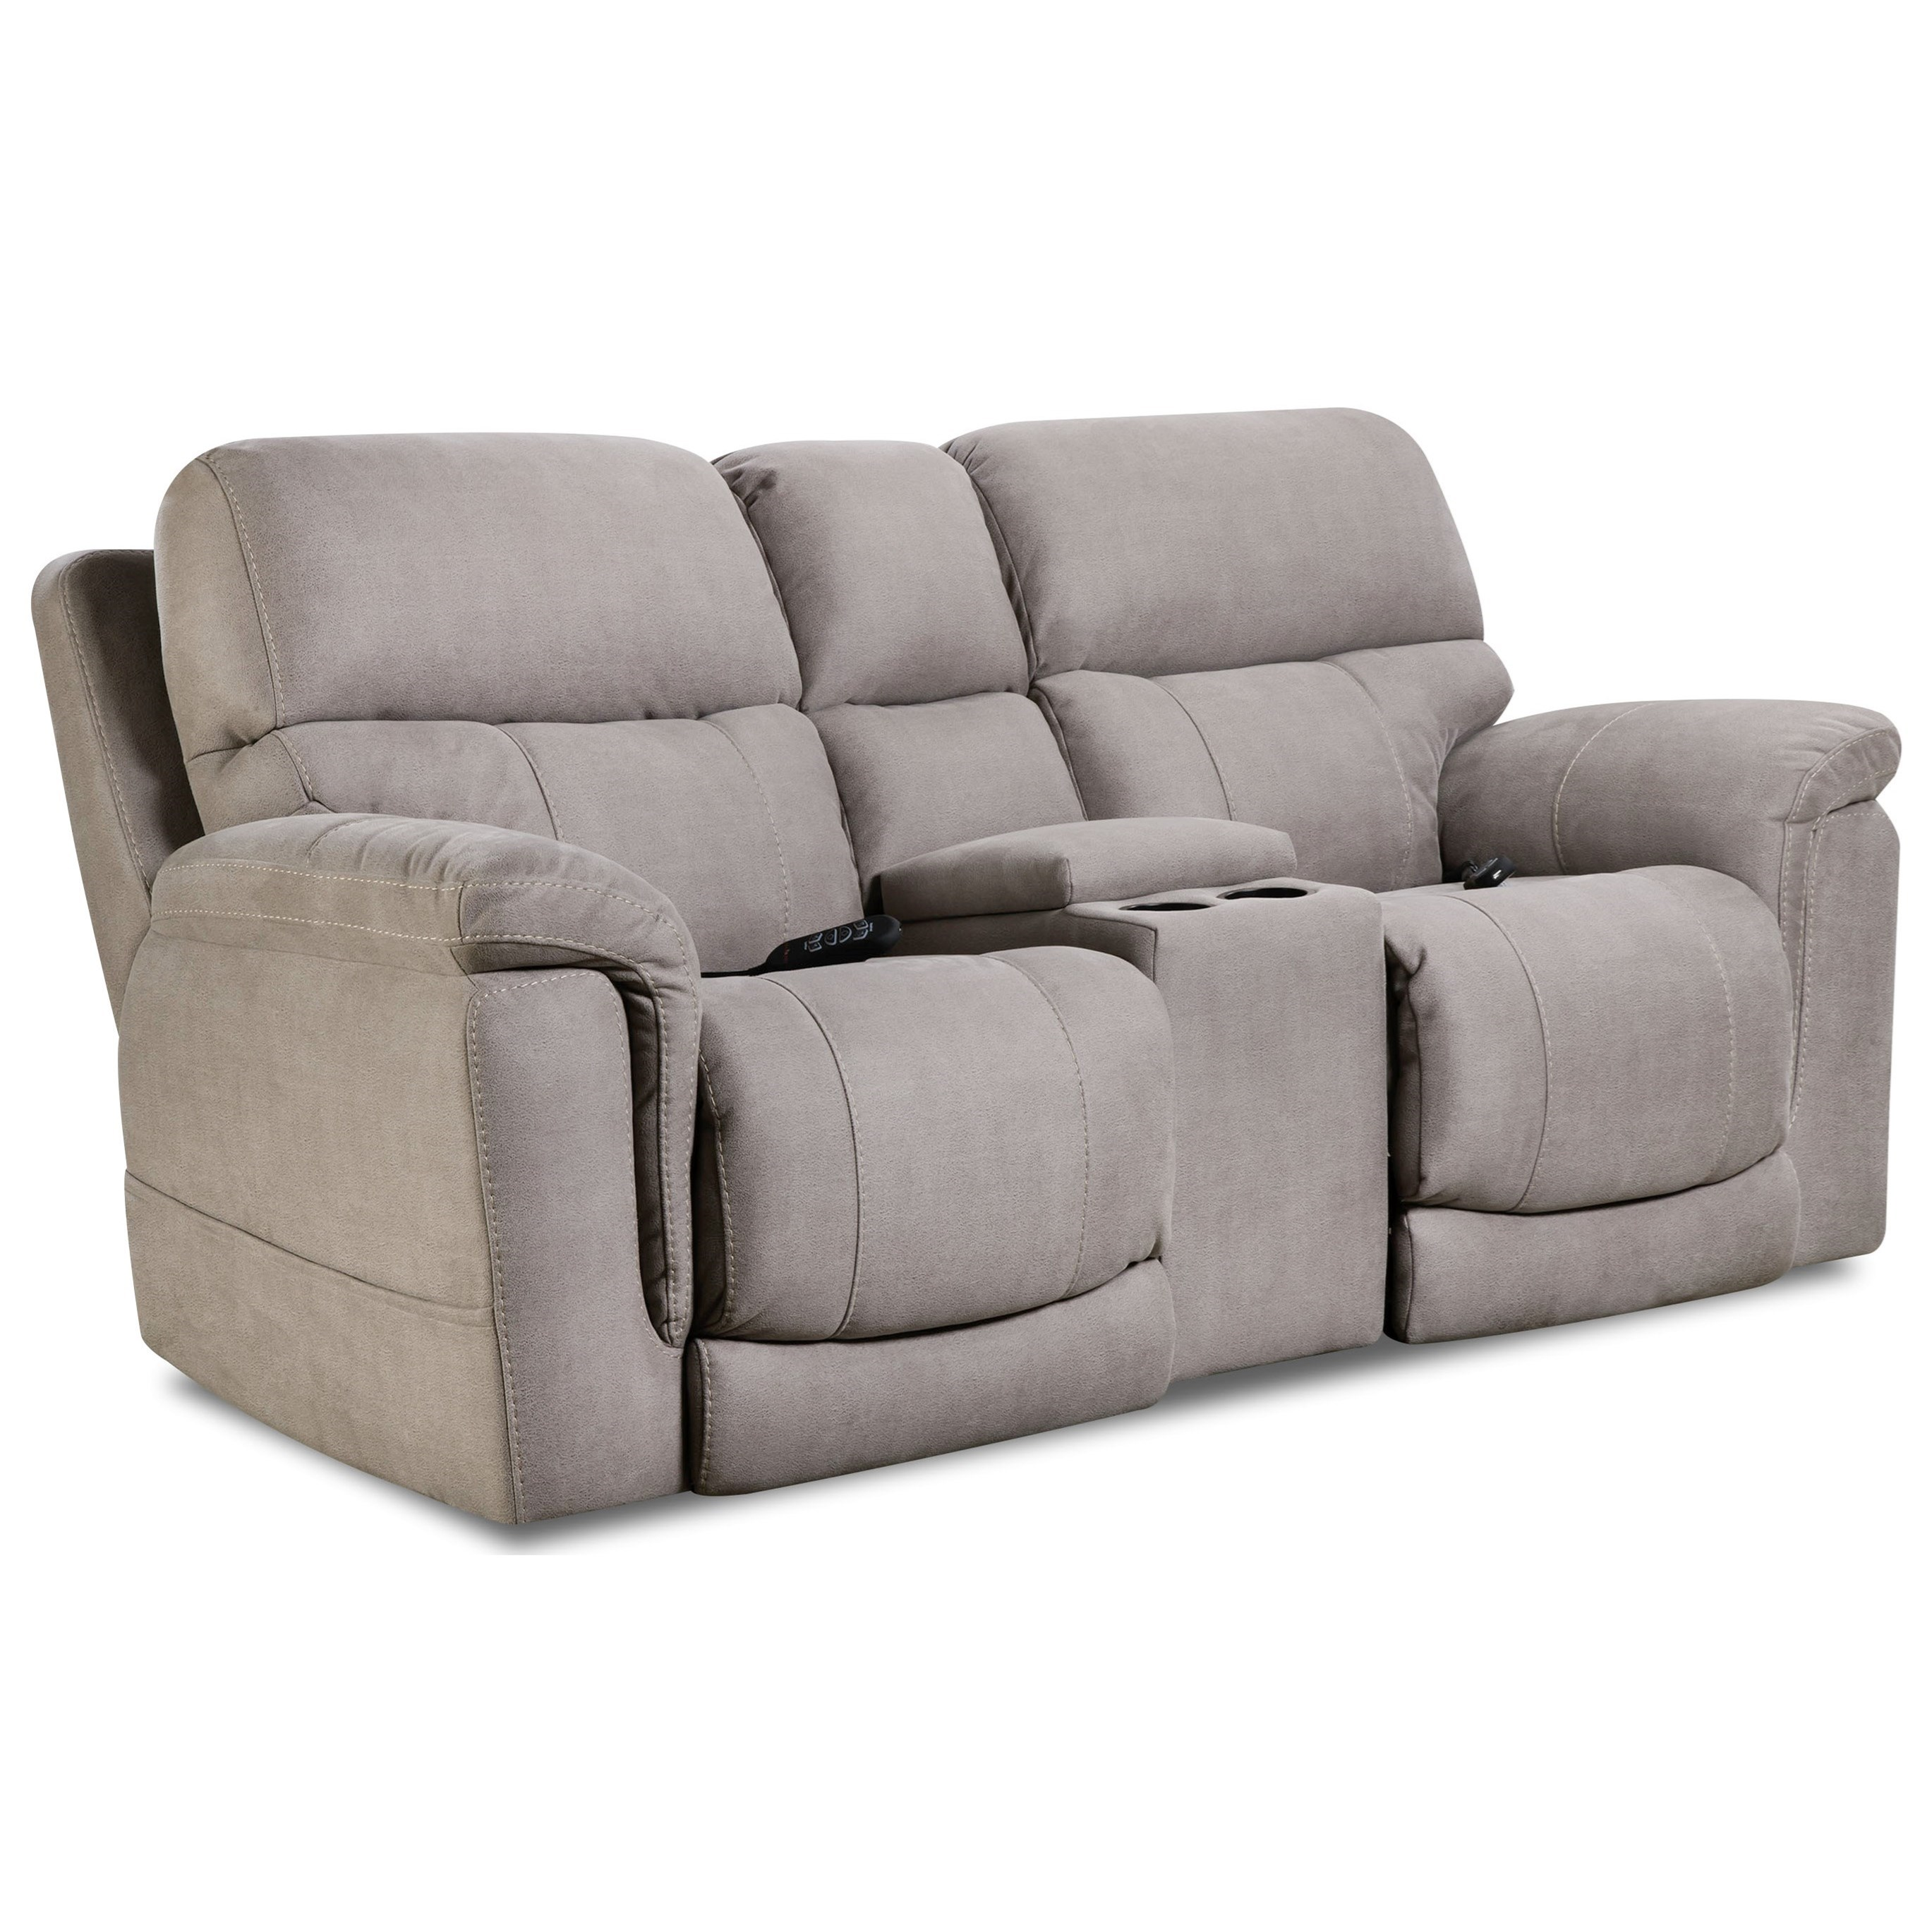 homestretch 175 collection power reclining loveseat with center console rife 39 s home furniture. Black Bedroom Furniture Sets. Home Design Ideas